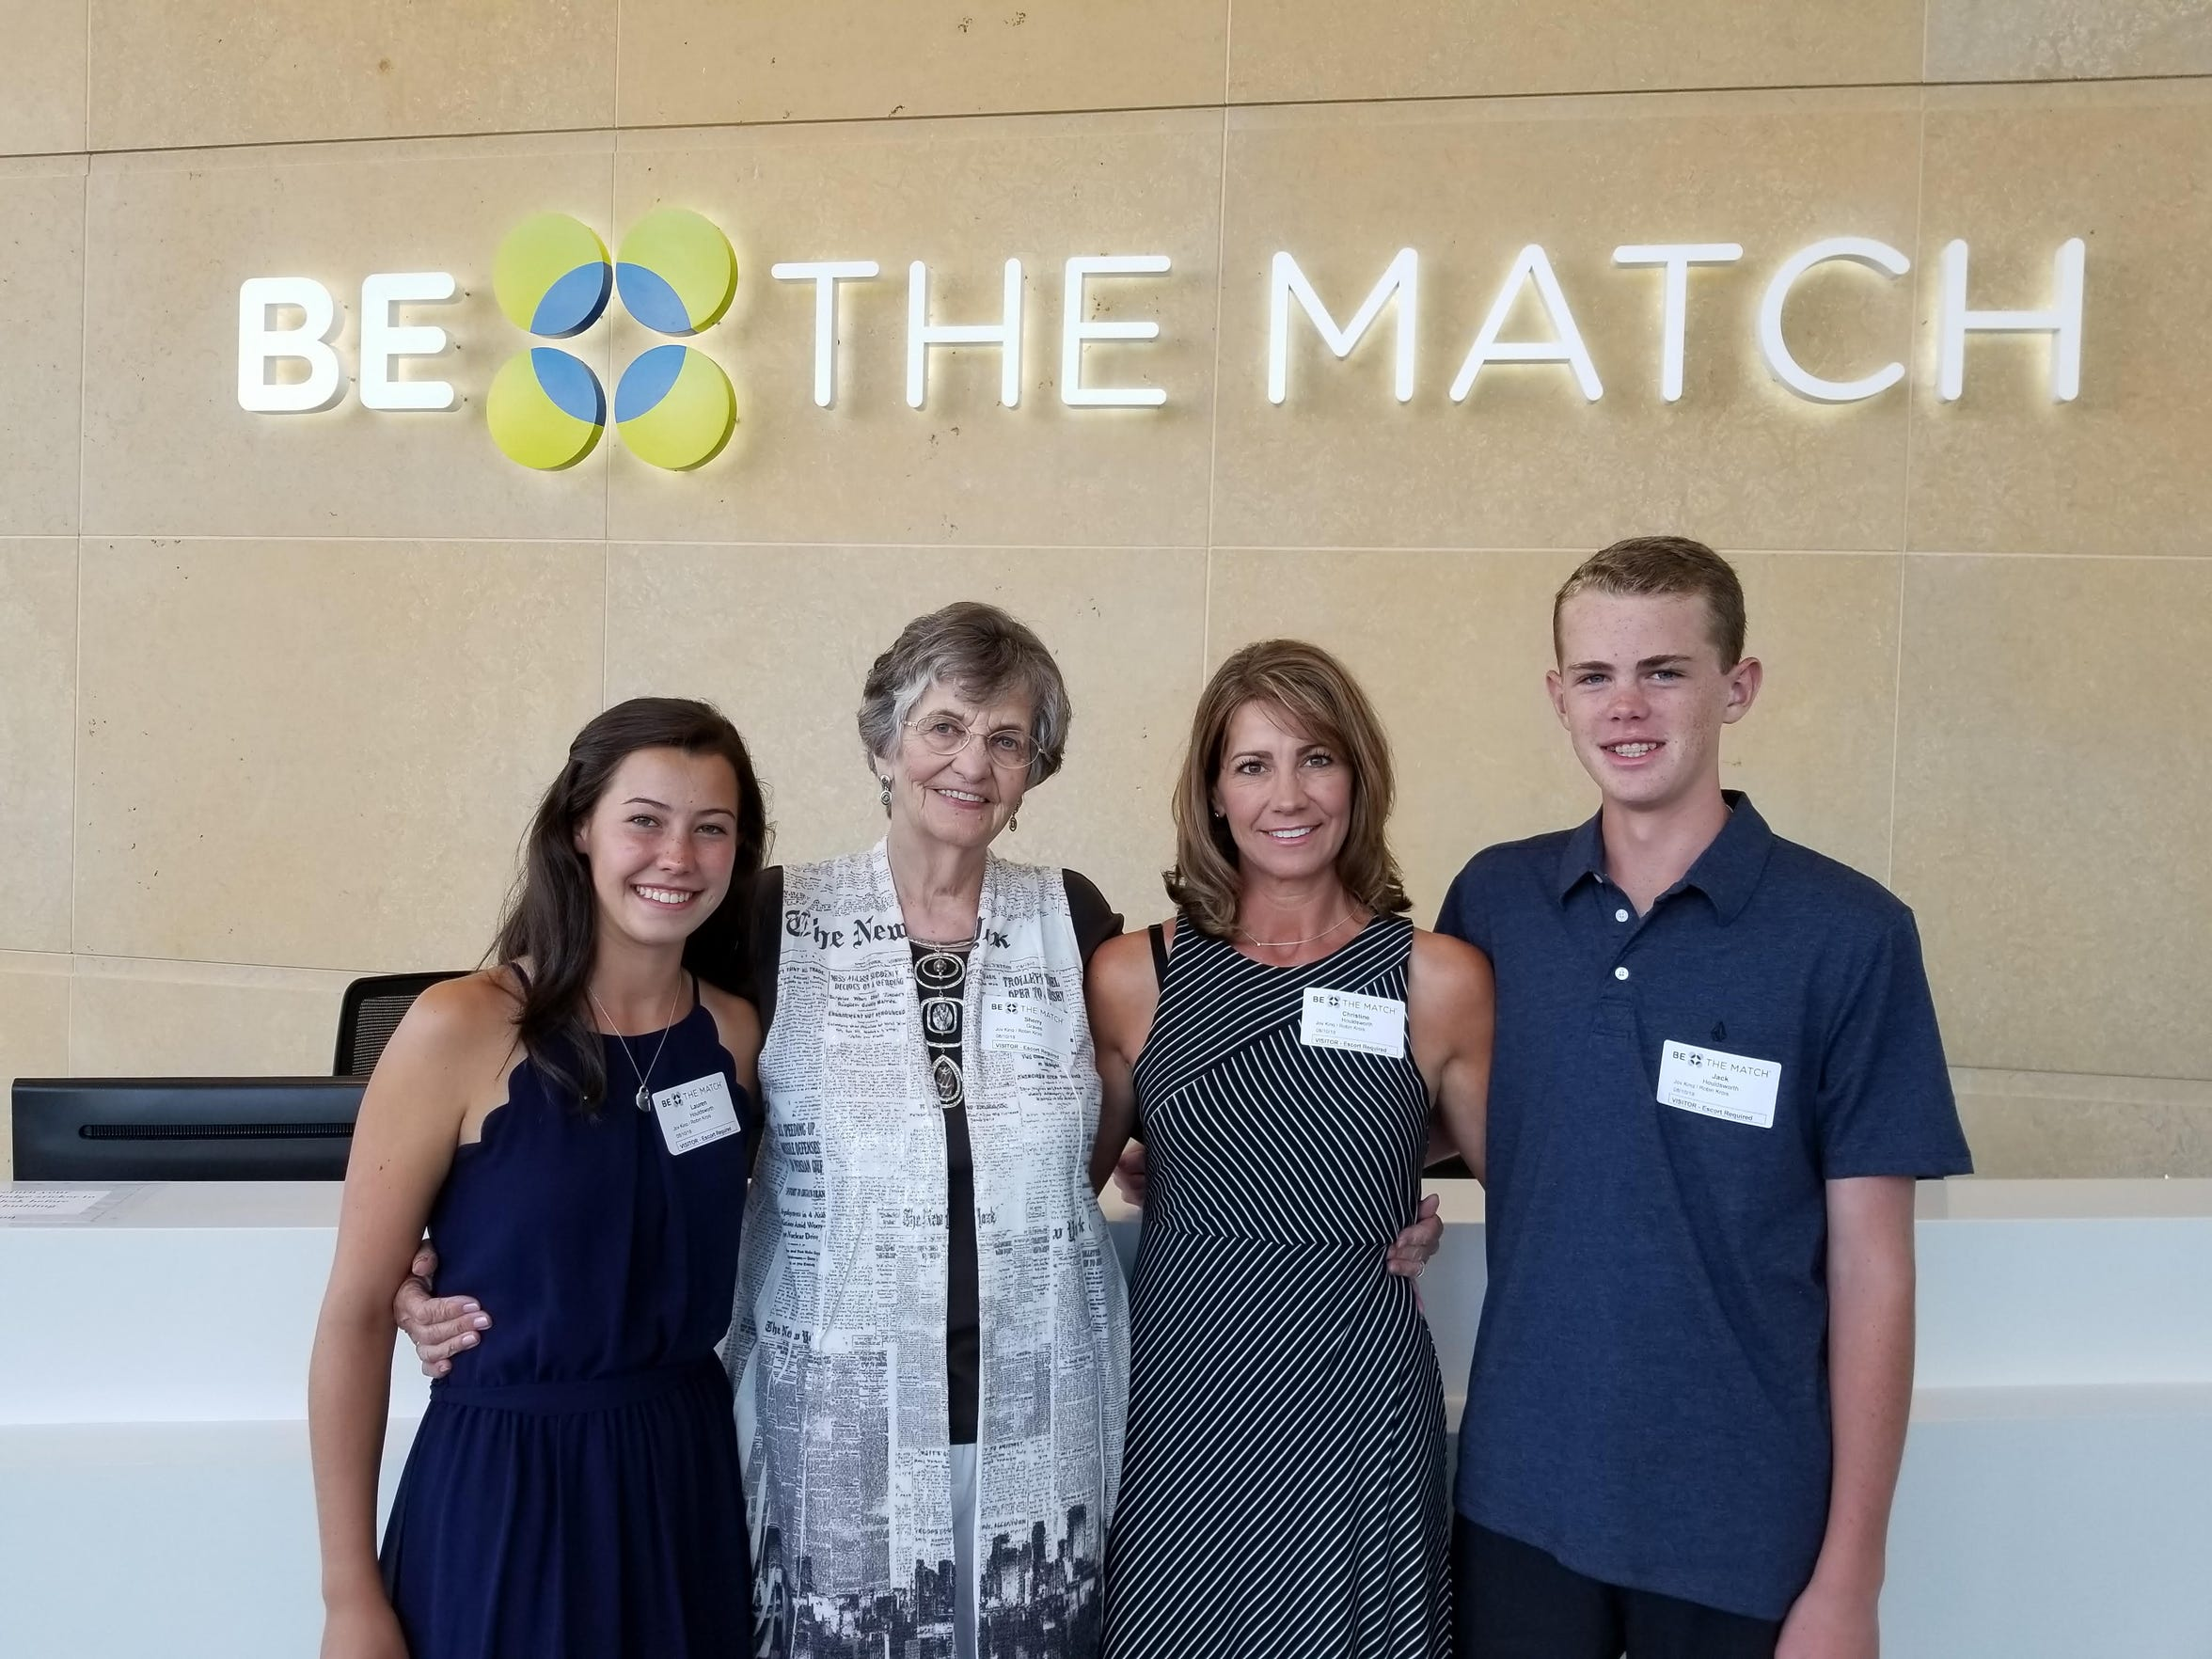 Family members (from left to right) Lauren Houldsworth, Sherry Graves, Christine Houldsworth and Jack Houldsworth at the Be The Match headquarters in Minneapolis.